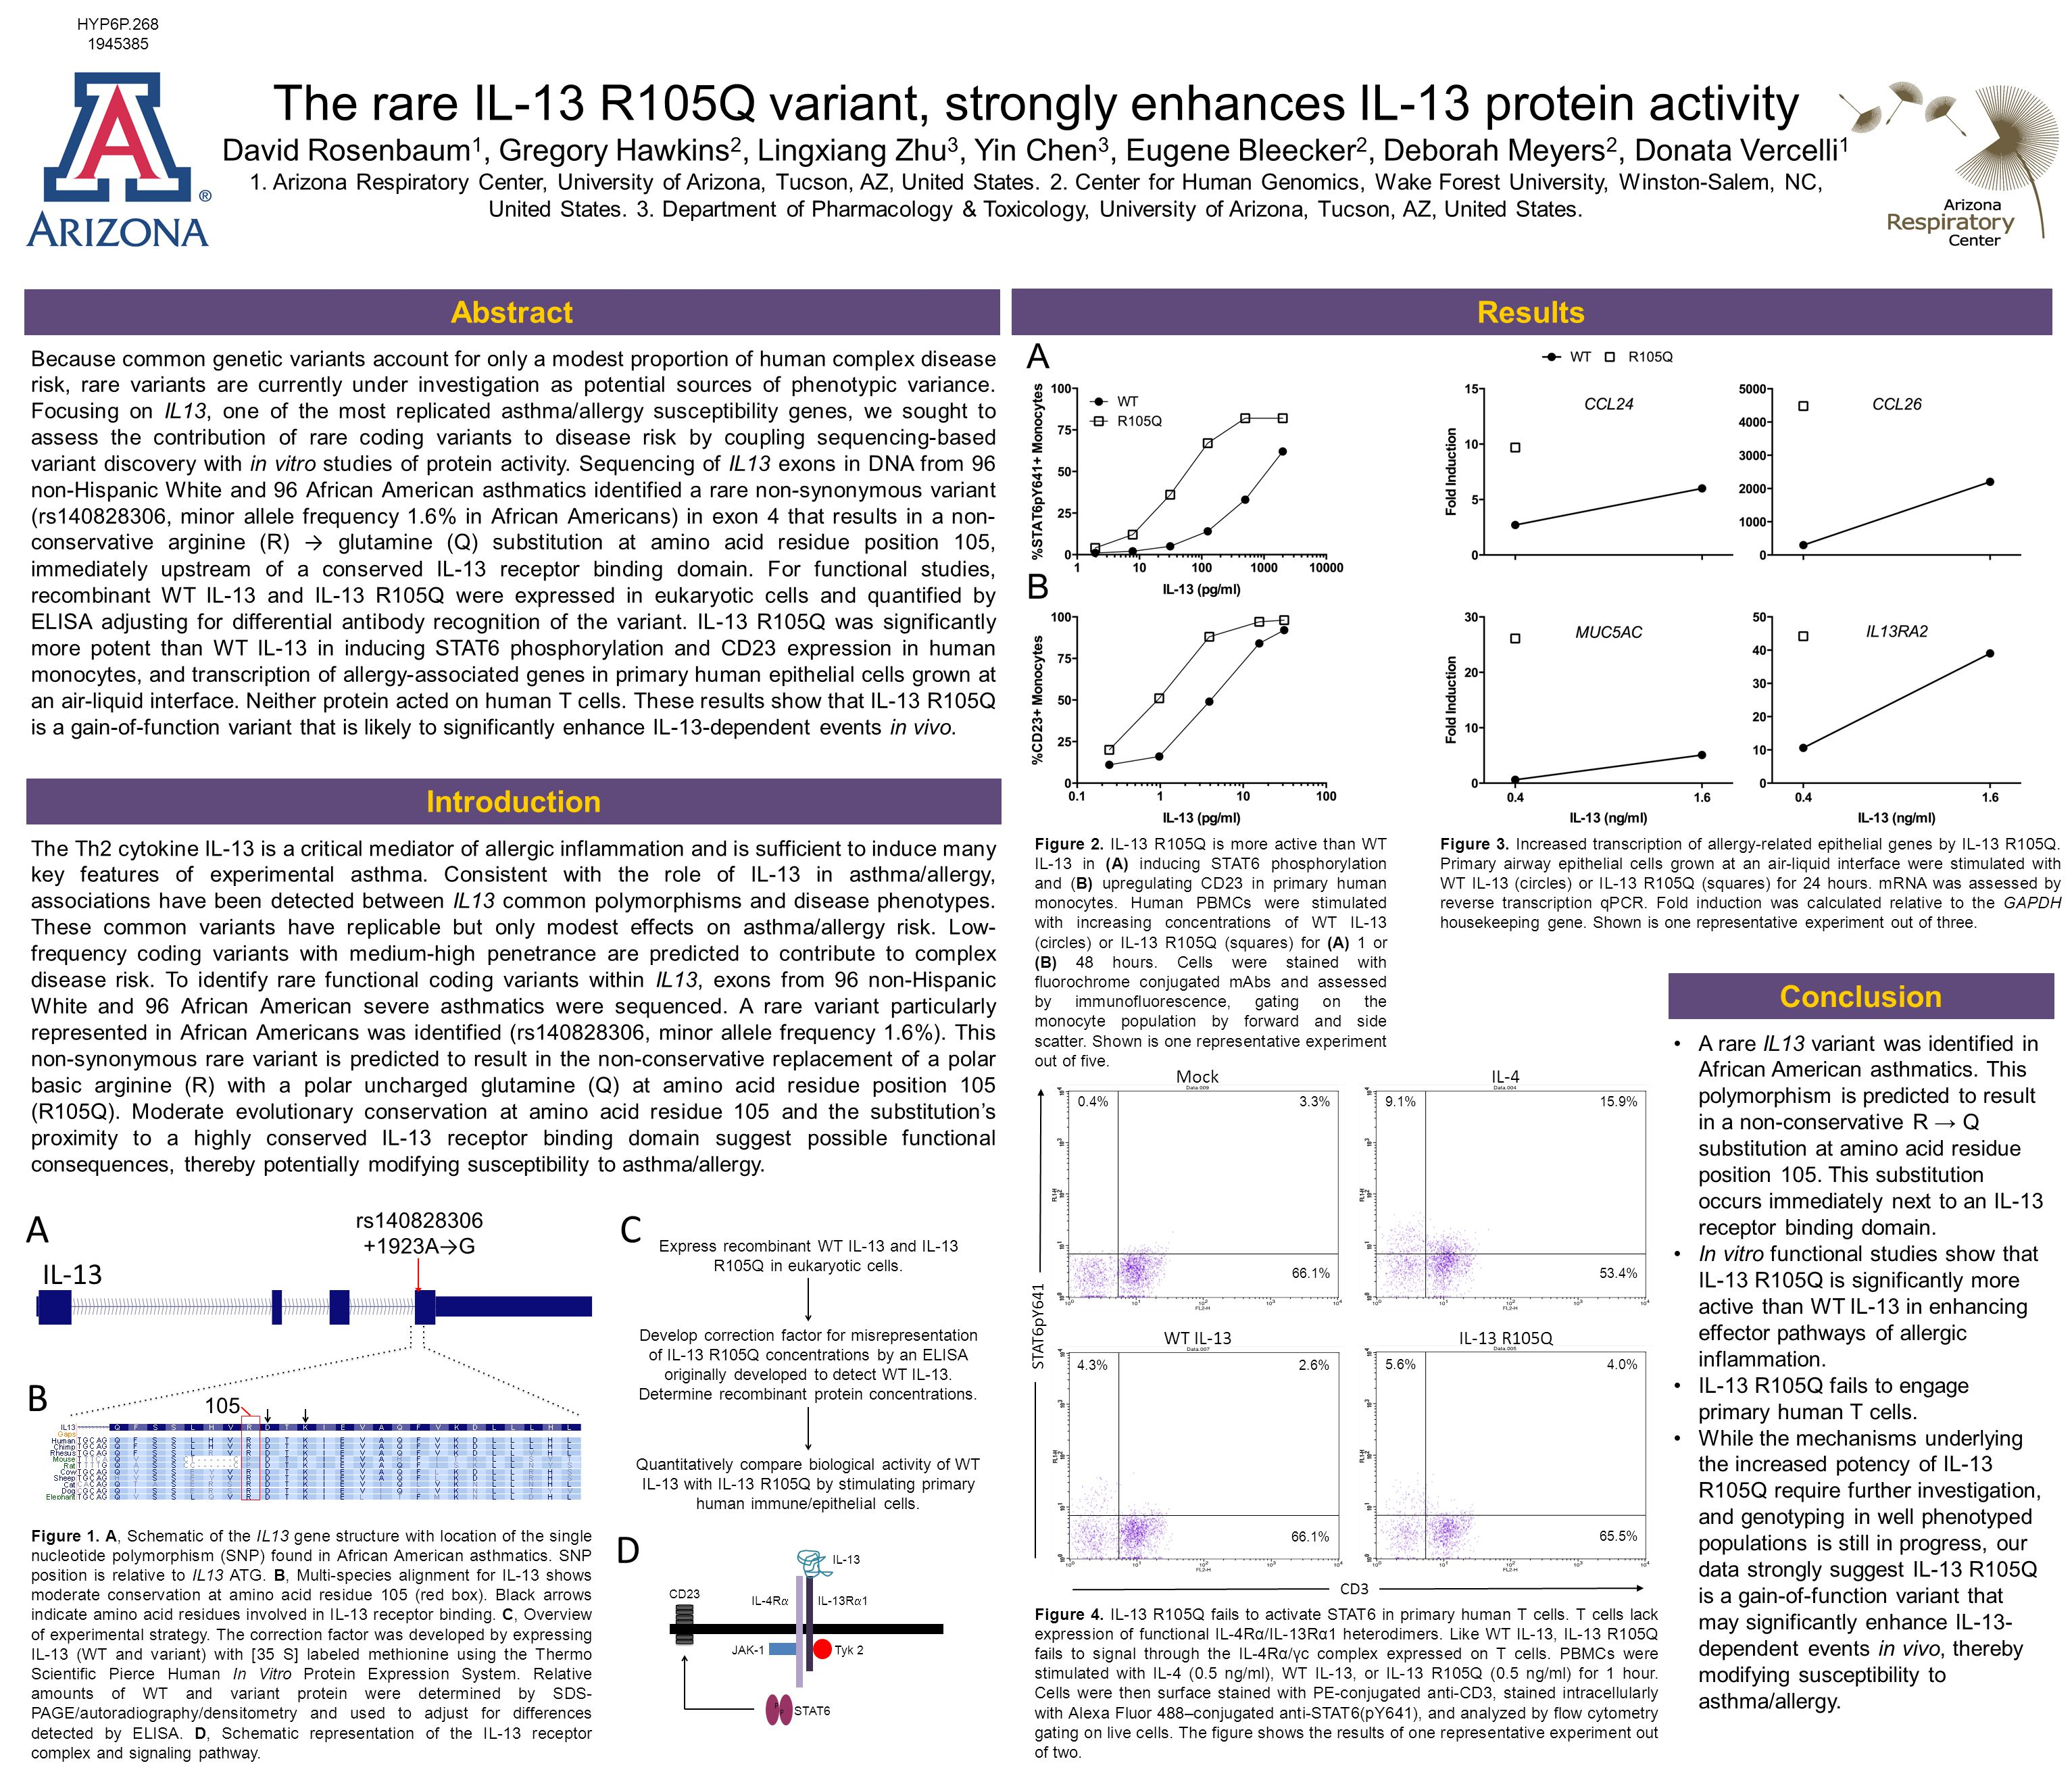 The rare IL-13 R105Q variant, strongly enhances IL-13 protein activity David Rosenbaum 1, Gregory Hawkins 2, Lingxiang Zhu 3, Yin Chen 3, Eugene Bleecker 2, Deborah Meyers 2, Donata Vercelli 1 1.